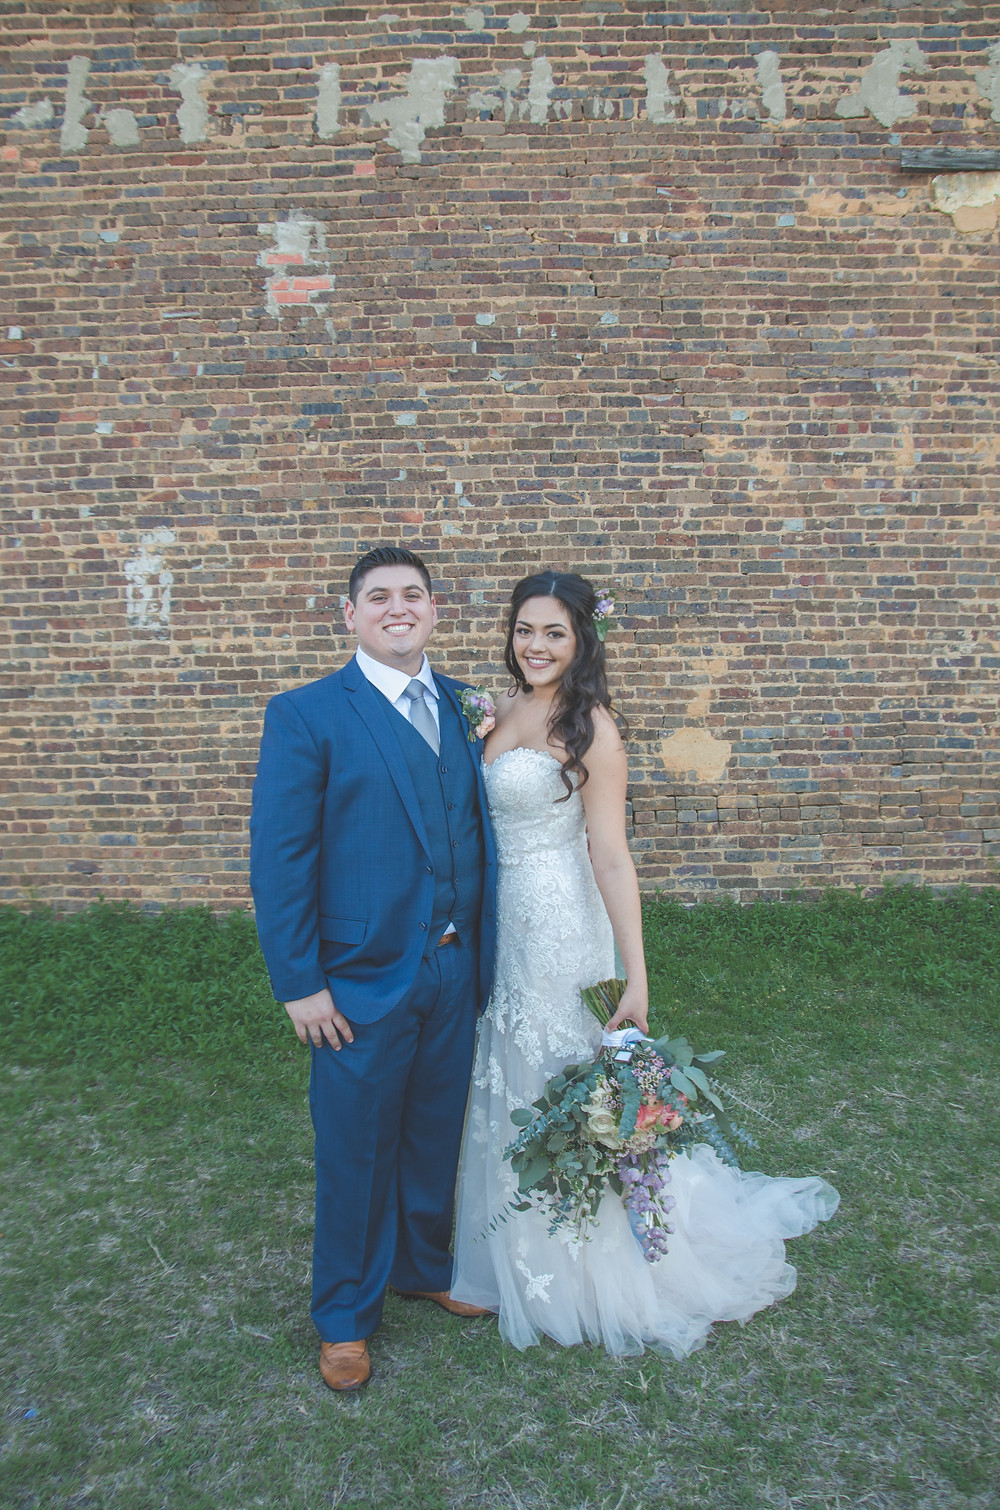 strapless lace wedding dress and blue suit